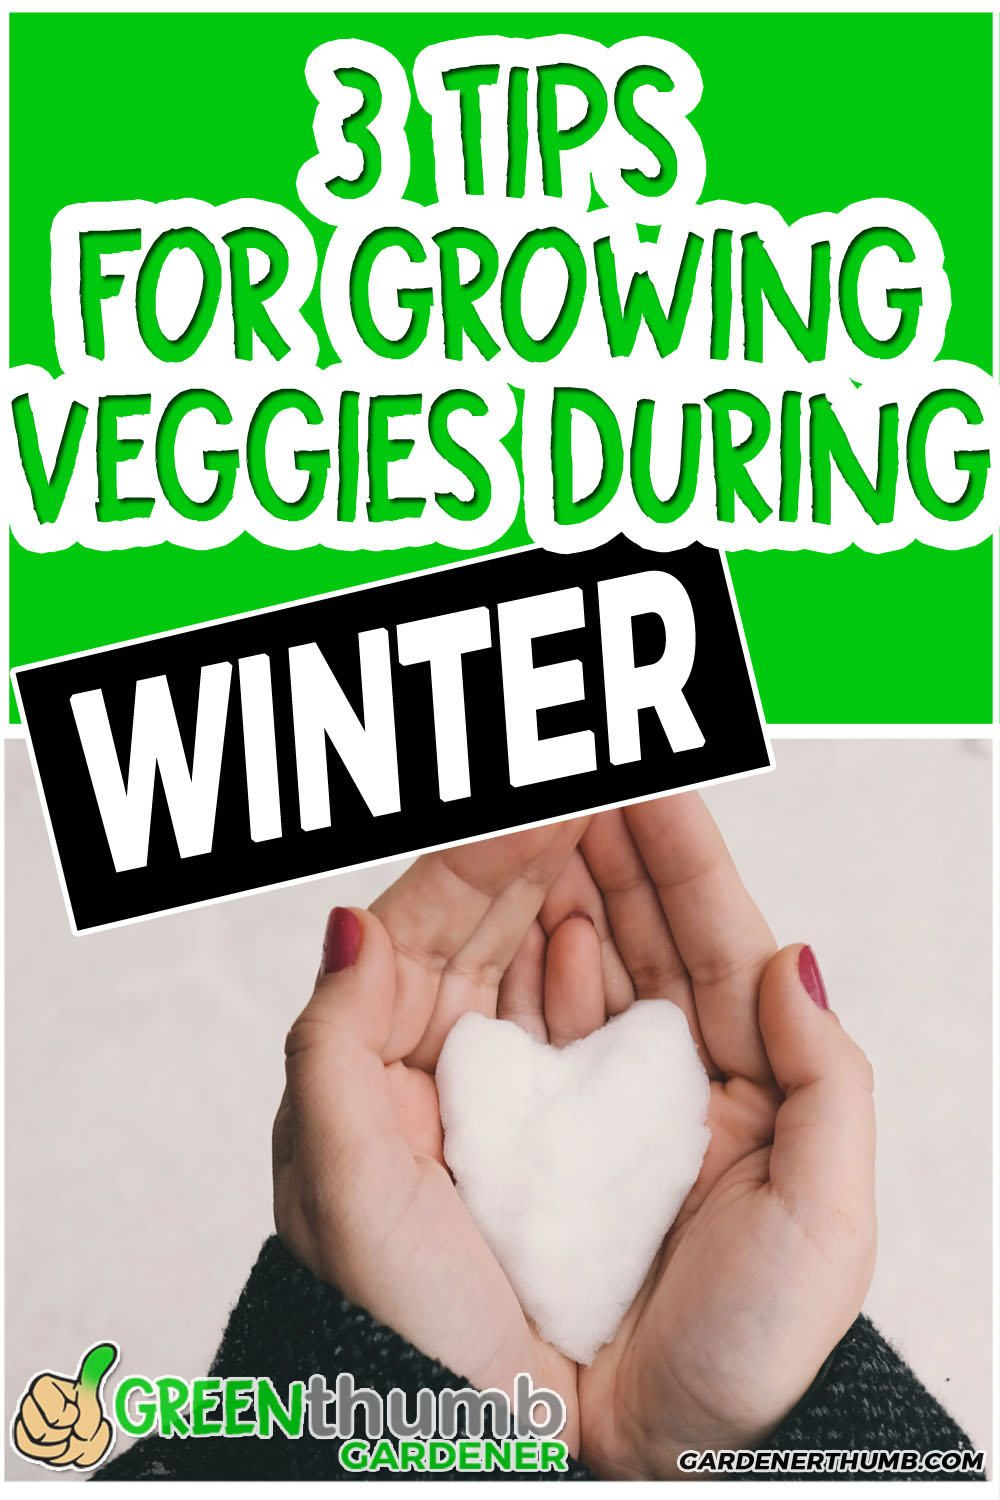 Winter Gardening is simple to do and easy to get started.  You can start planting vegetables during the winter with some basic techniques.    Your winter garden will be successful when you have the right expertise to help guide you.  Check out the book review at the end for one of the premier winter gardening experts. #wintergardening #wintergarden #wintergardening